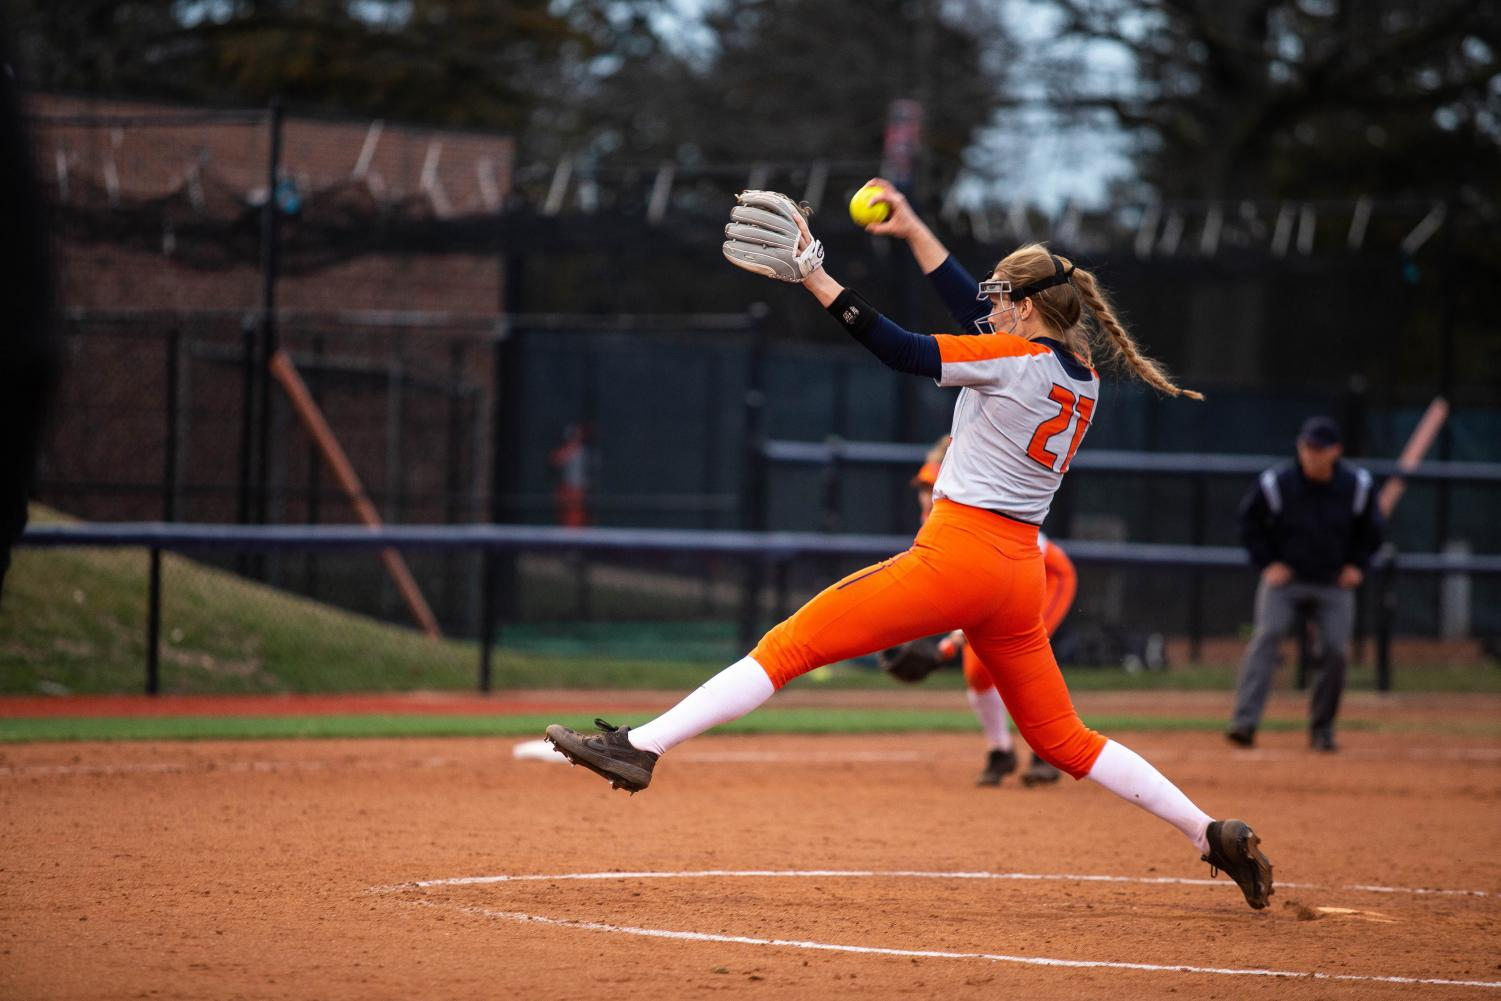 Sophomore pitcher Sydney Sickles pitches during Illinois' game against Illinois State at Eichelberger Field on April 3, 2019.